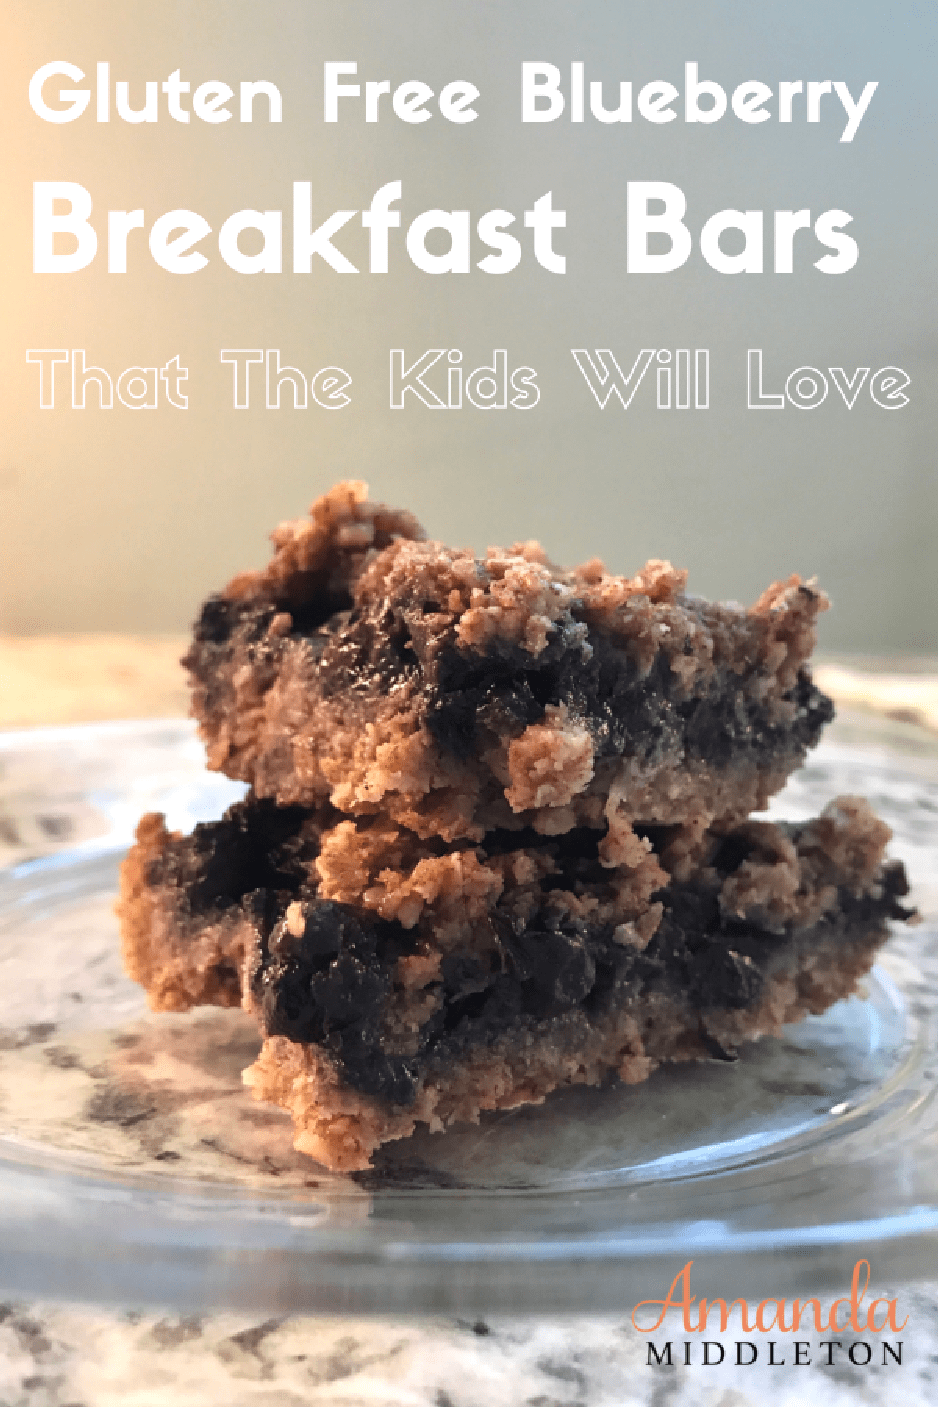 Gluten Free Blueberry Breakfast Bars That The Kids Will Love